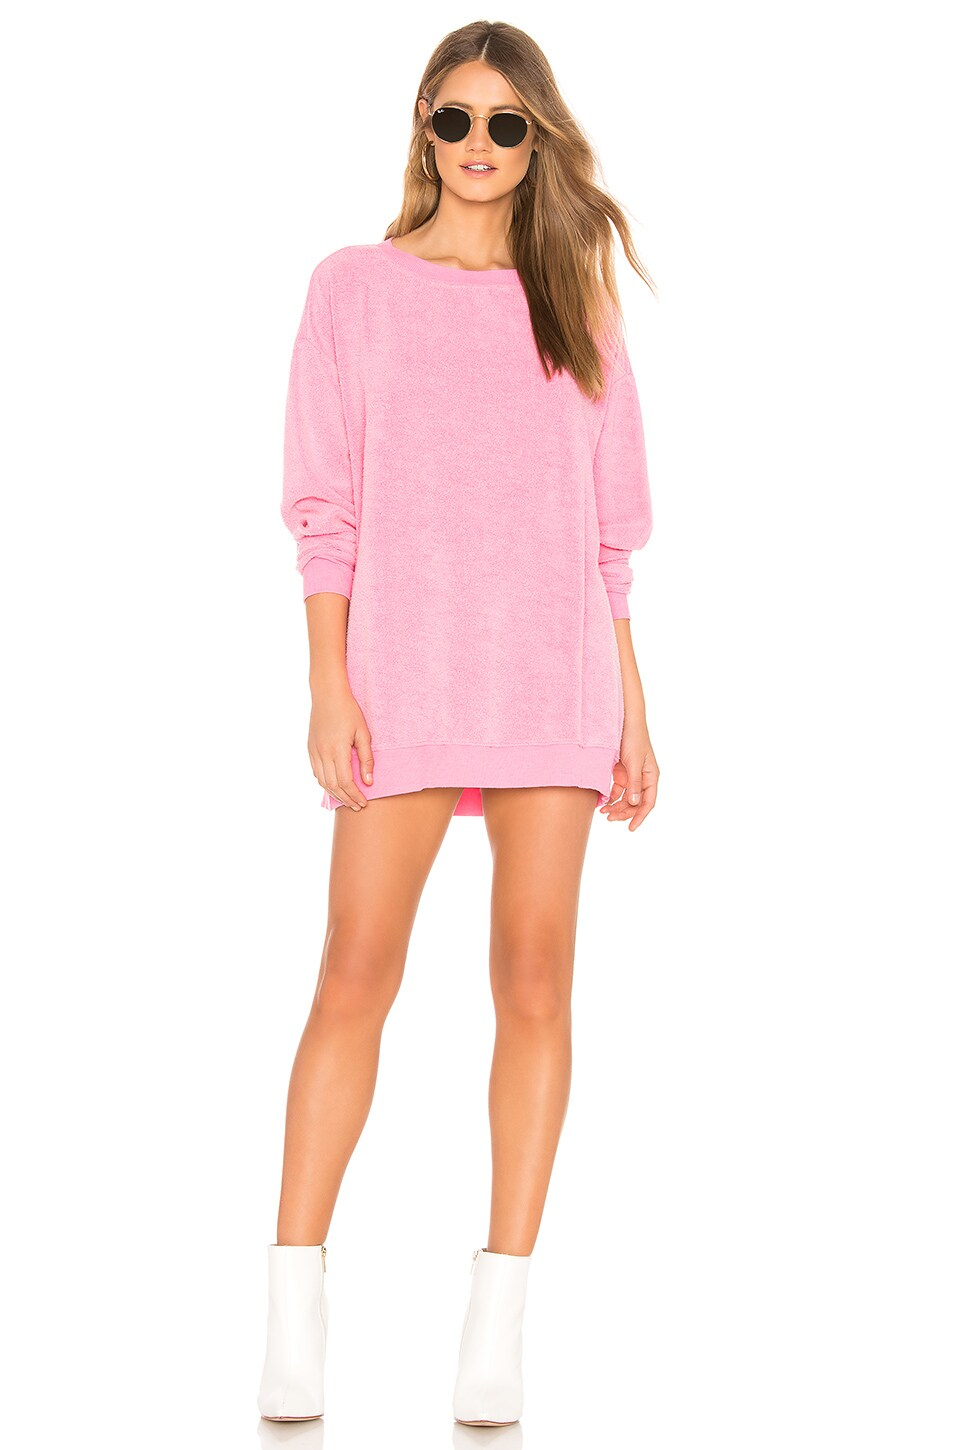 WILDFOX COUTURE ROADTRIP SWEATER DRESS